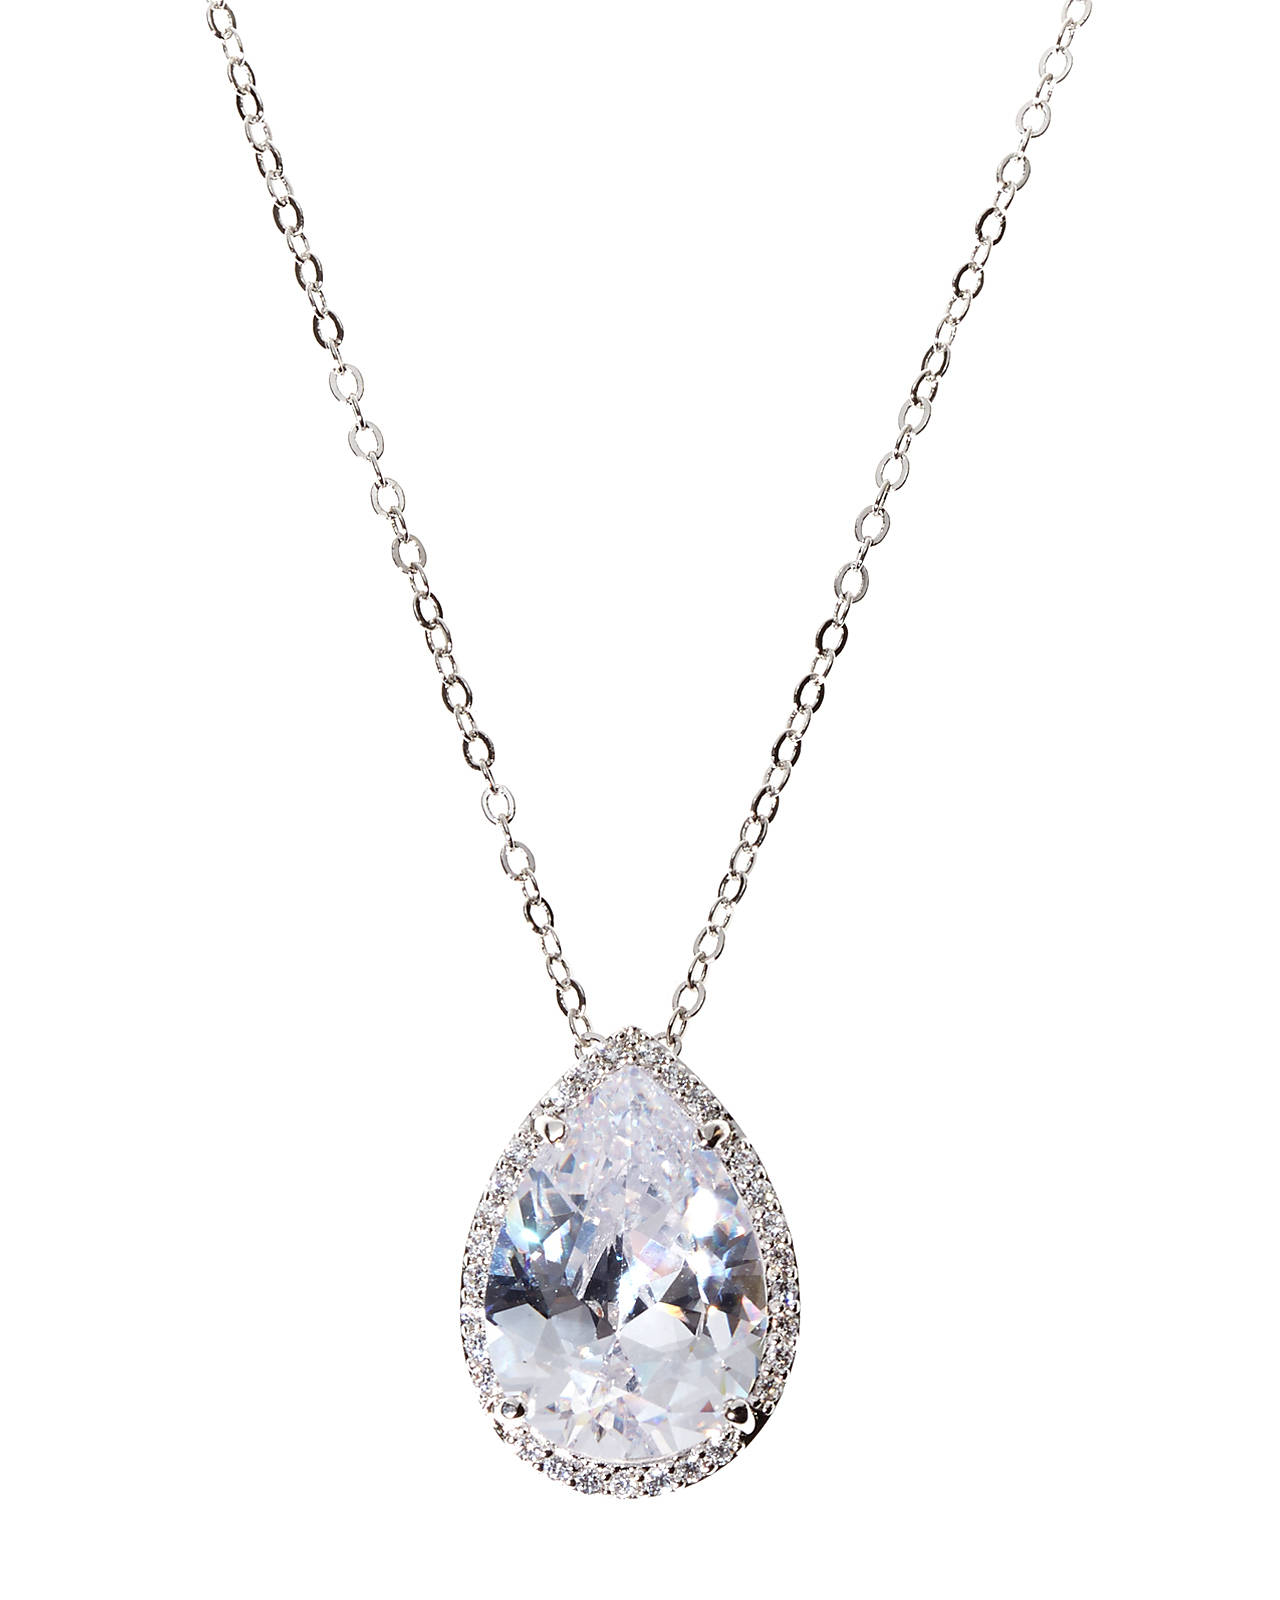 platinum bale diamond double setting shaped solitaire shape pear necklace pendant in